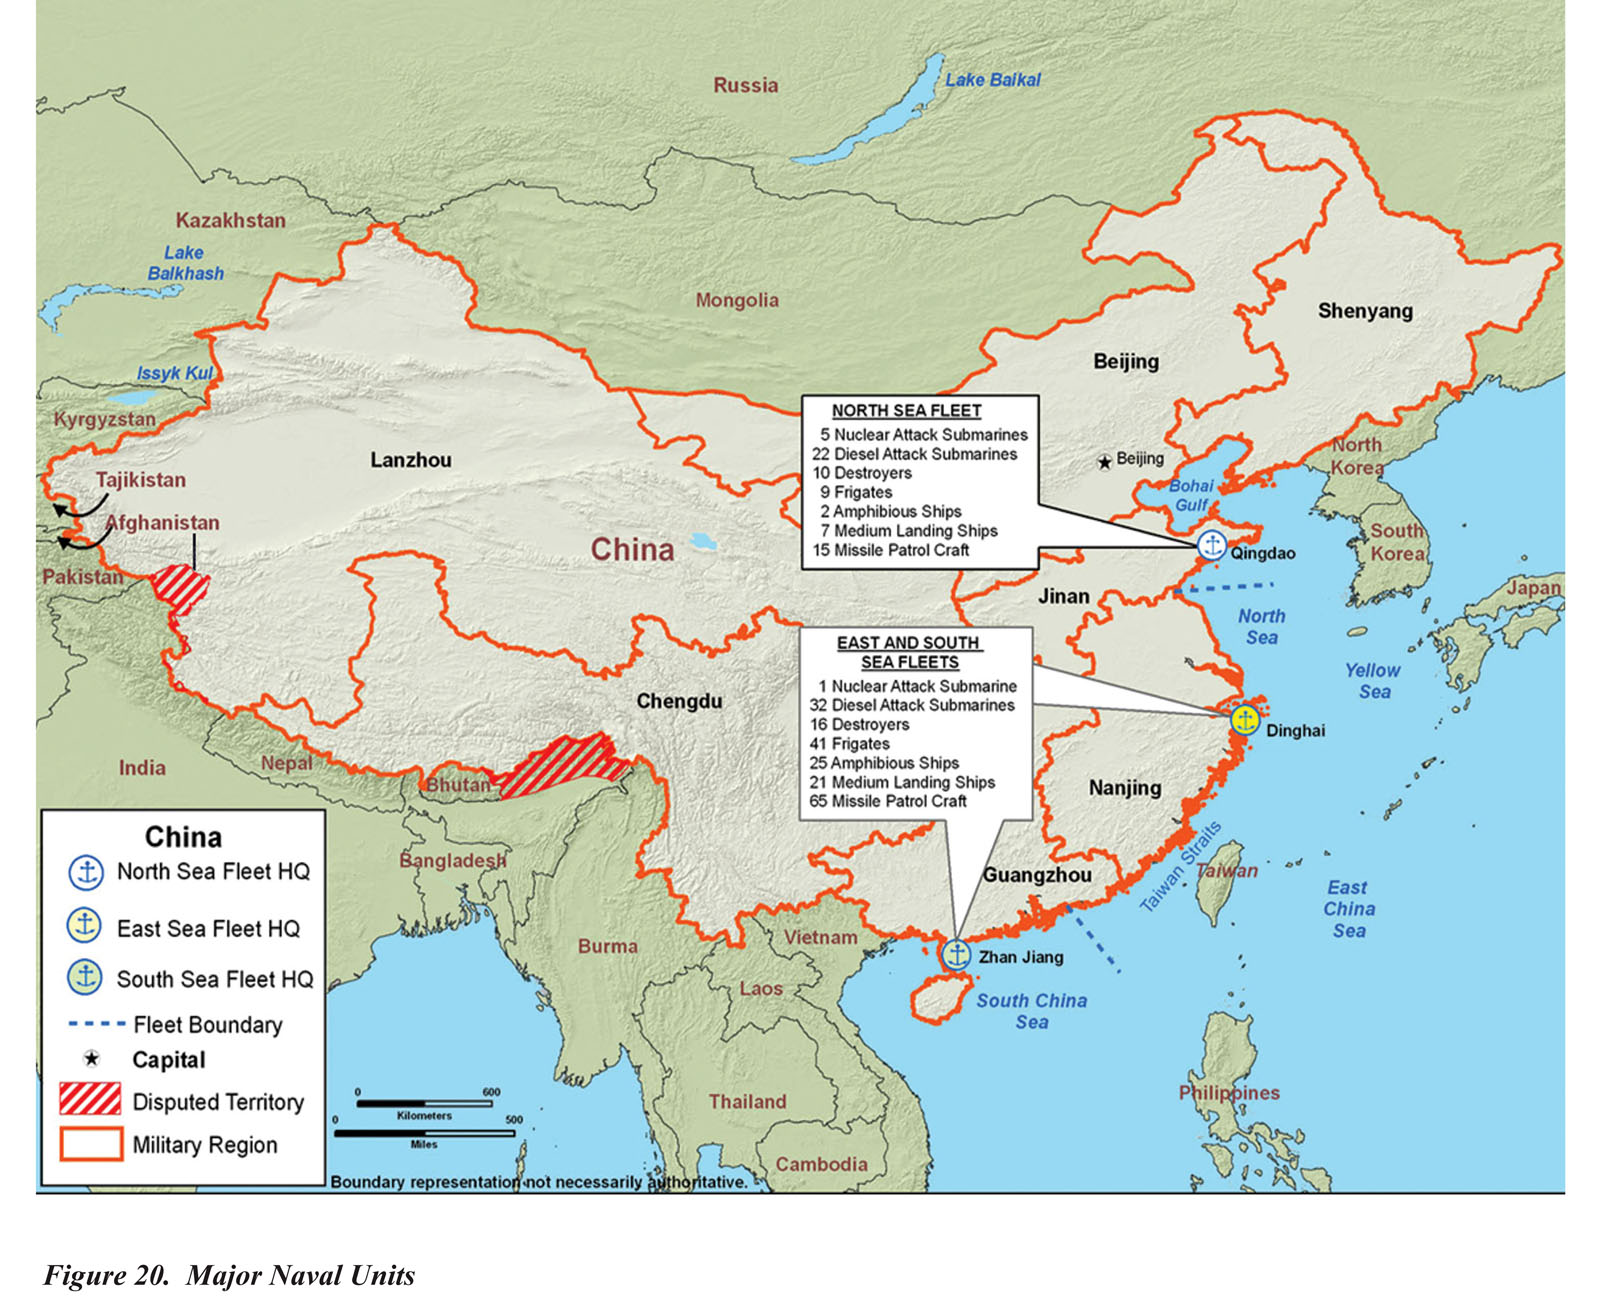 Maps From Military Power Of The People S Republic Of China 2009